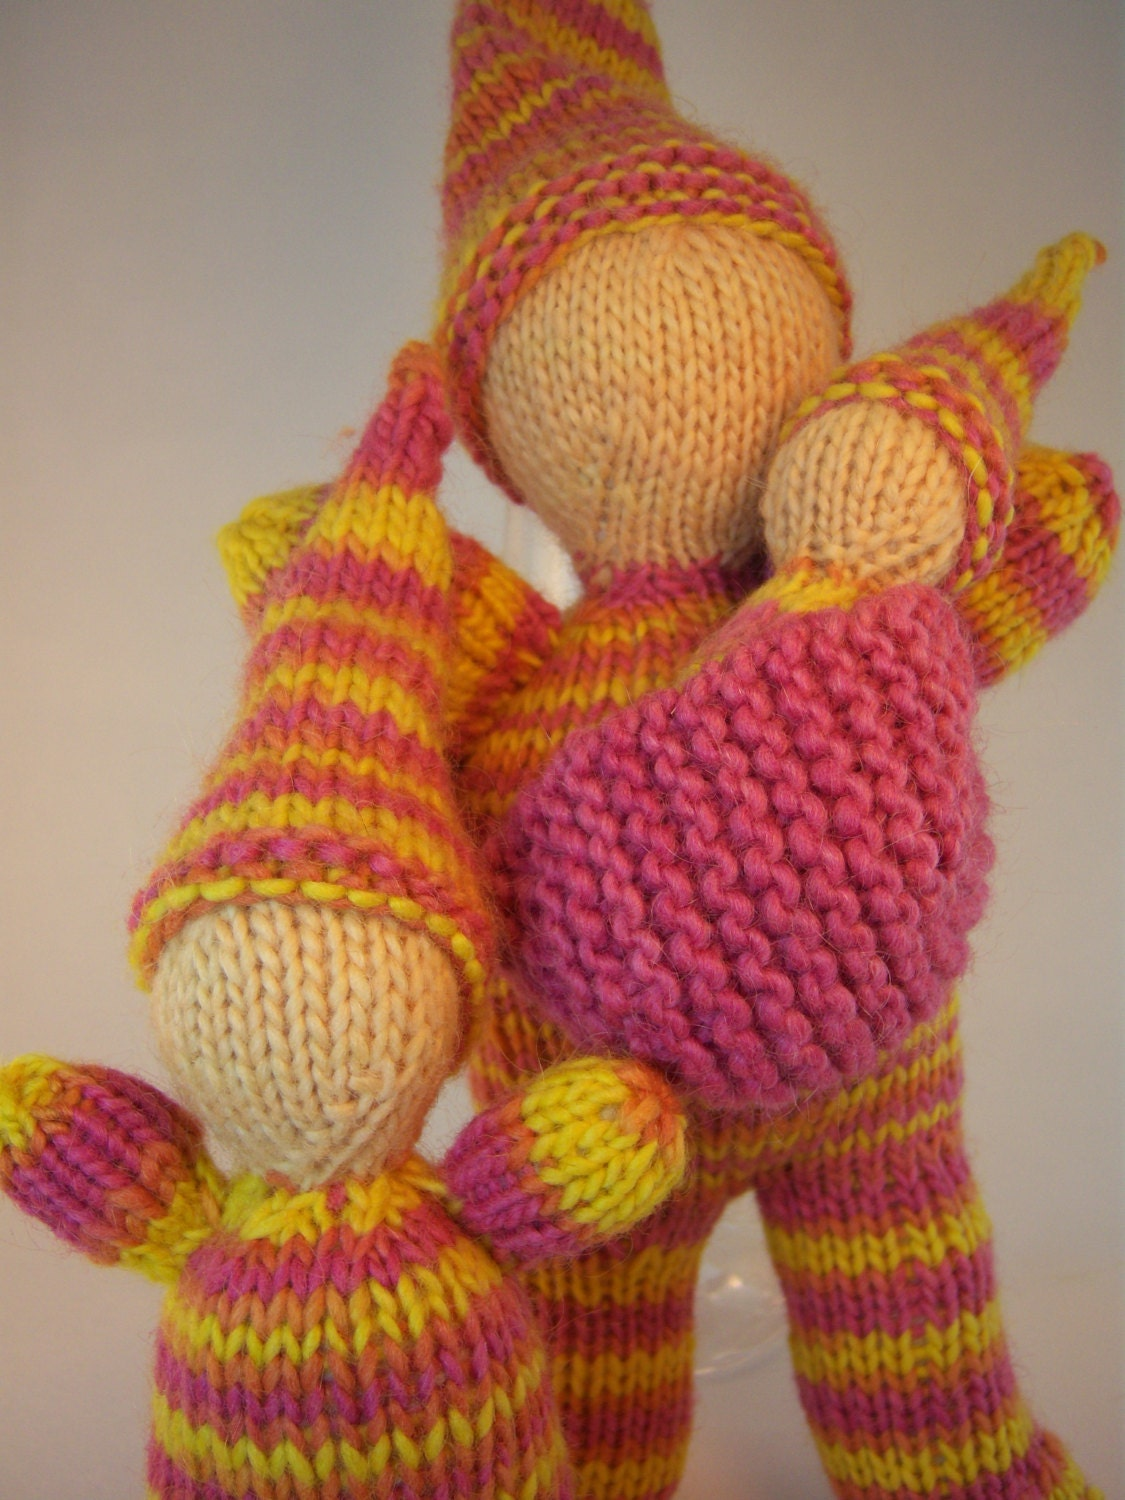 Gnome Knitting Pattern : Waldorf Knitting PATTERN Knitted Gnome Family by SimplyPlaying1